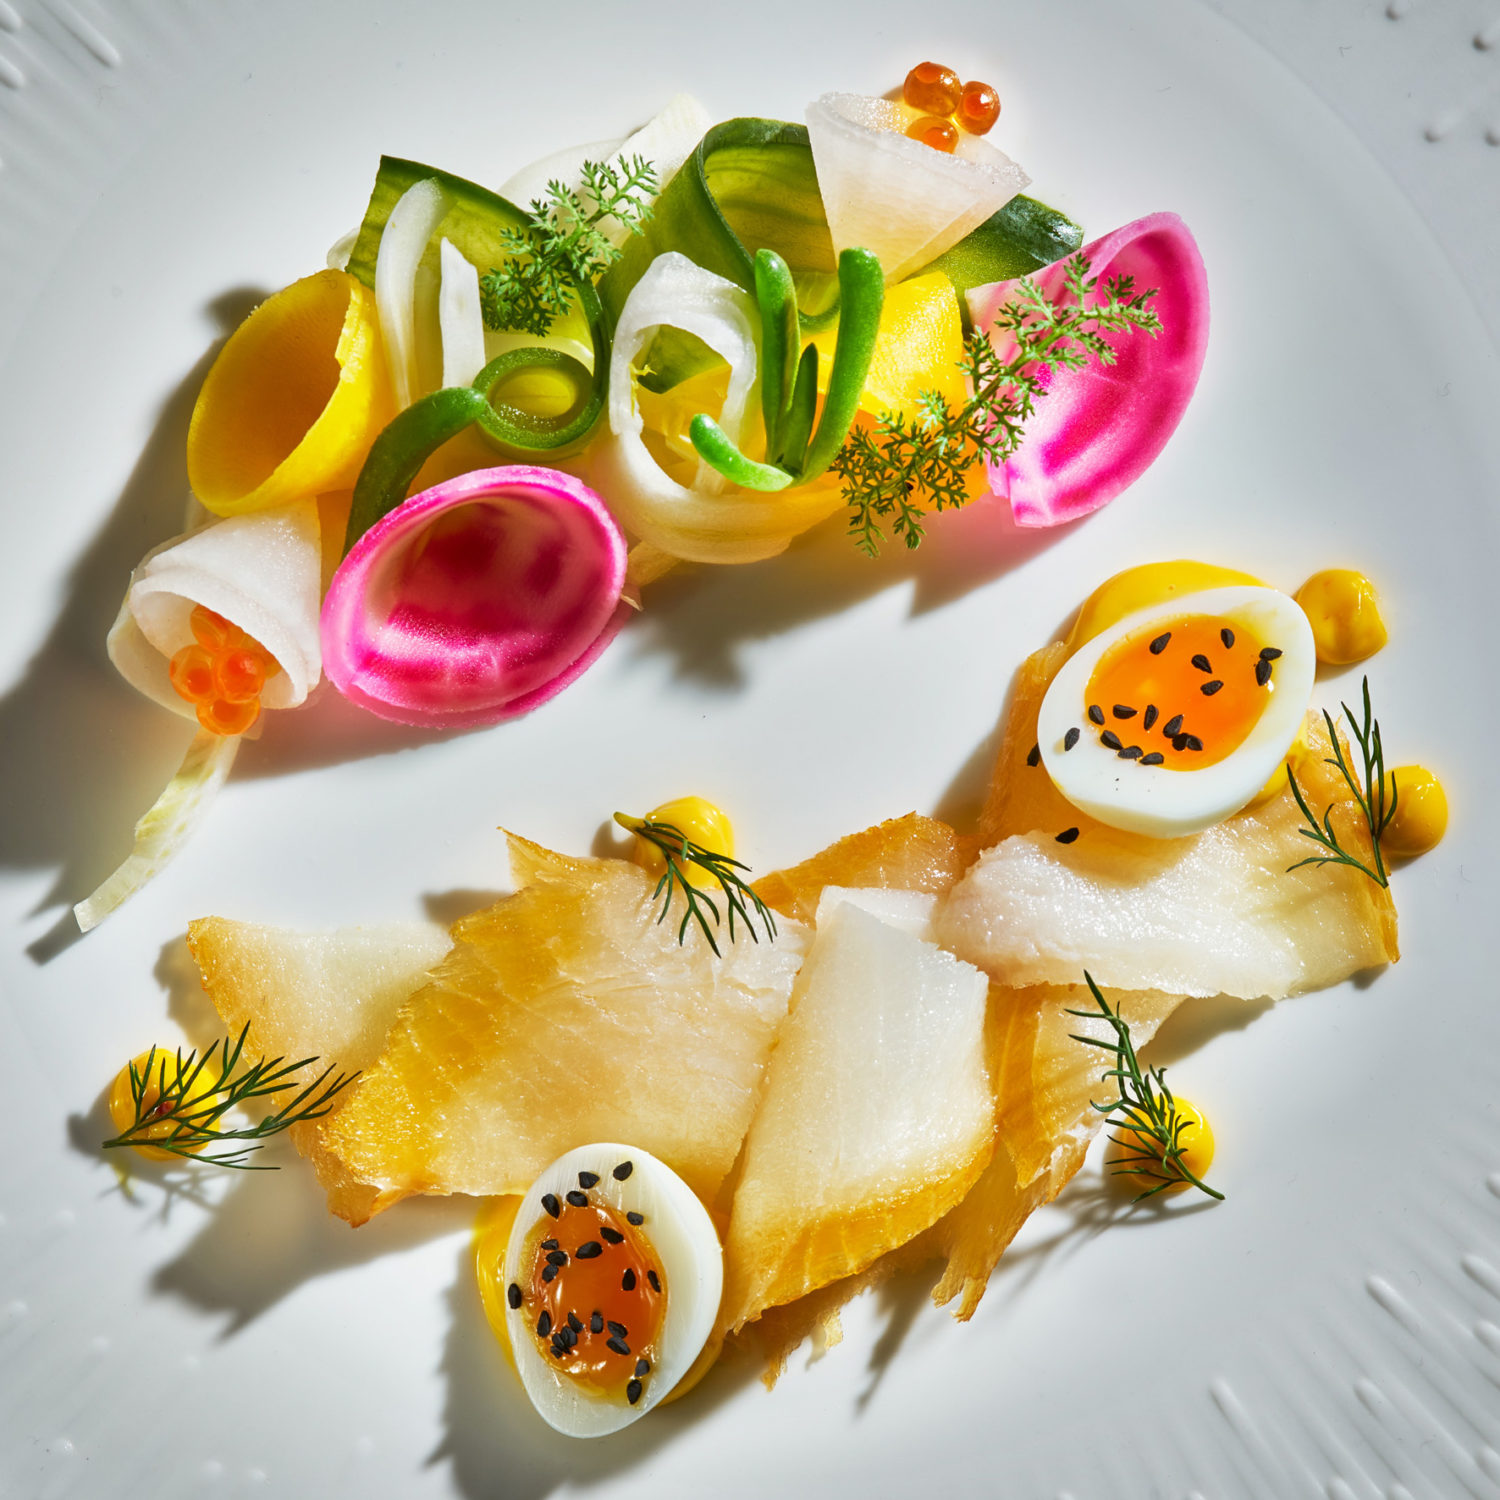 Smoked Halibut with quail egg, pickled beetroot, shaved fennel on white patterned plate.